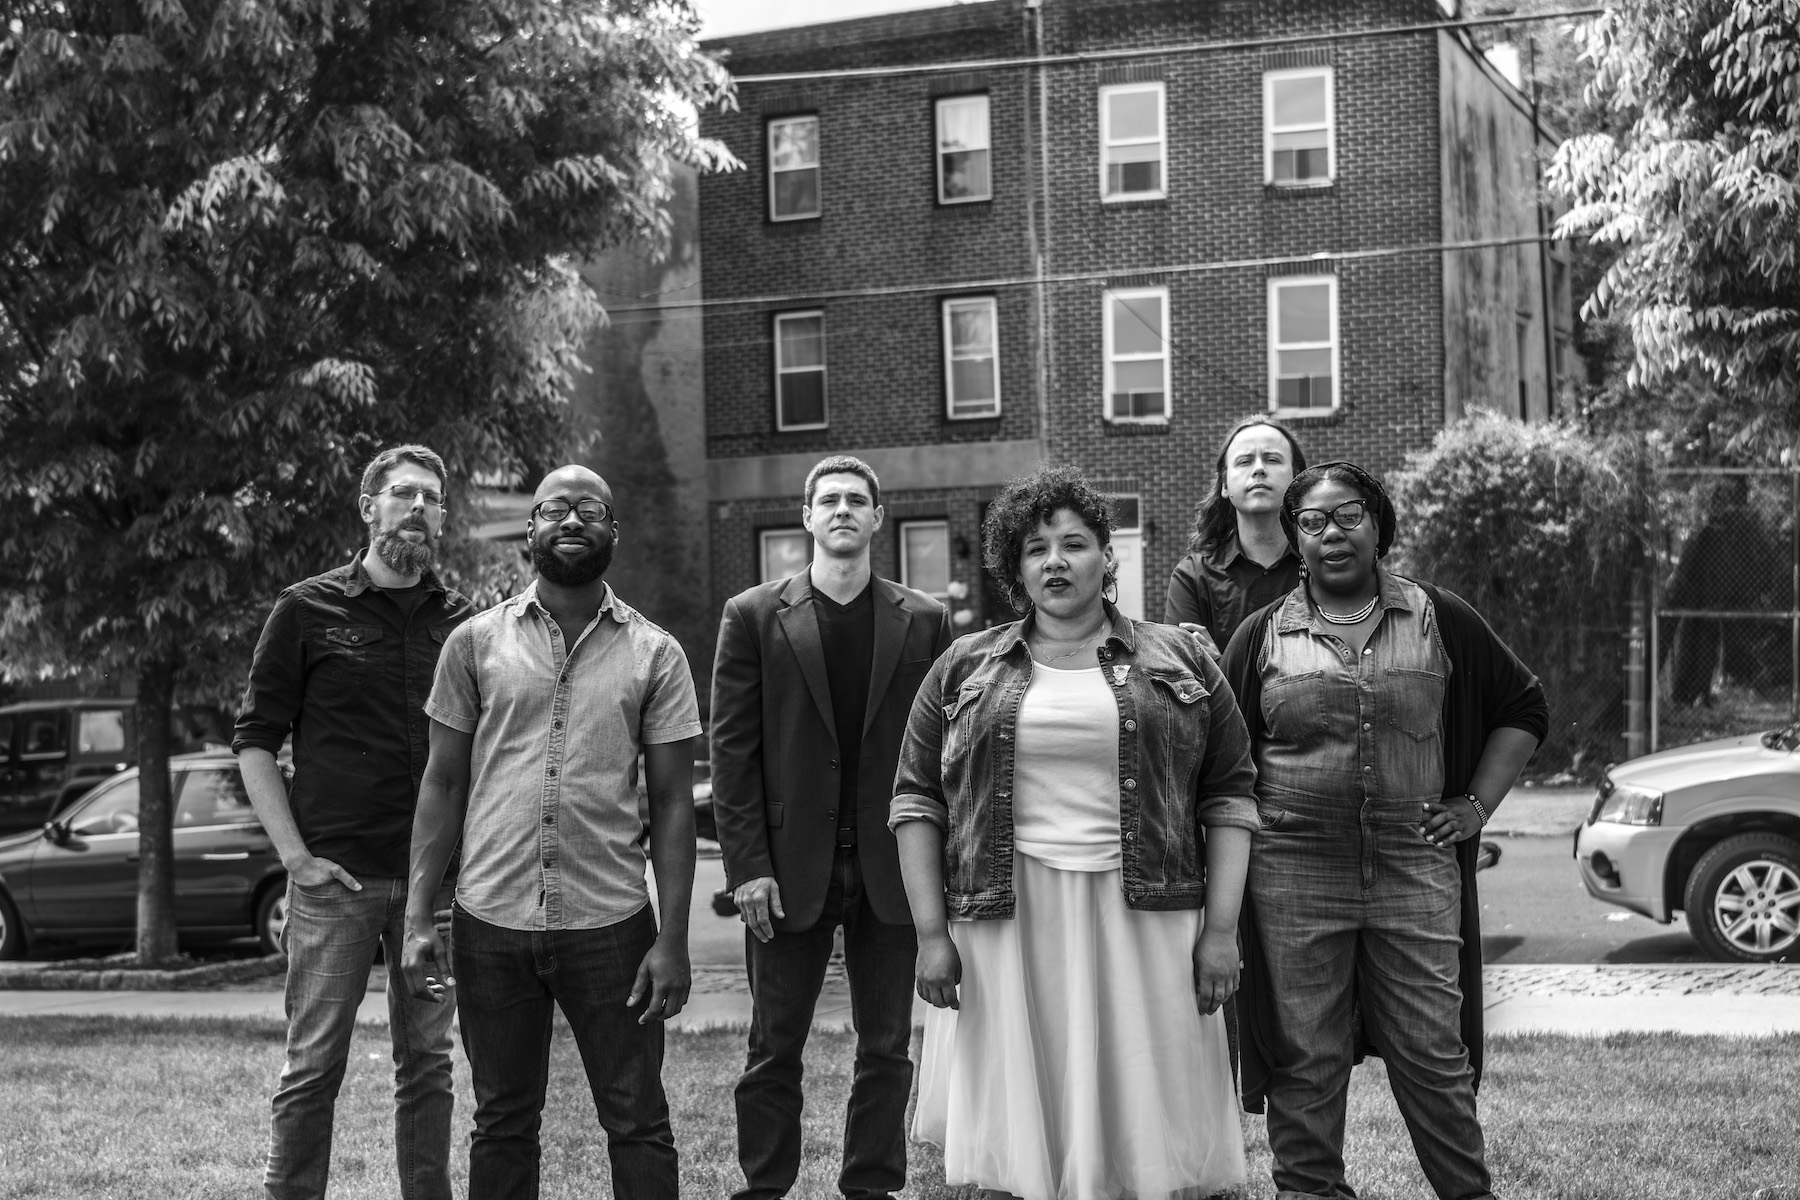 Jeanette Berry and the Soul Nerds